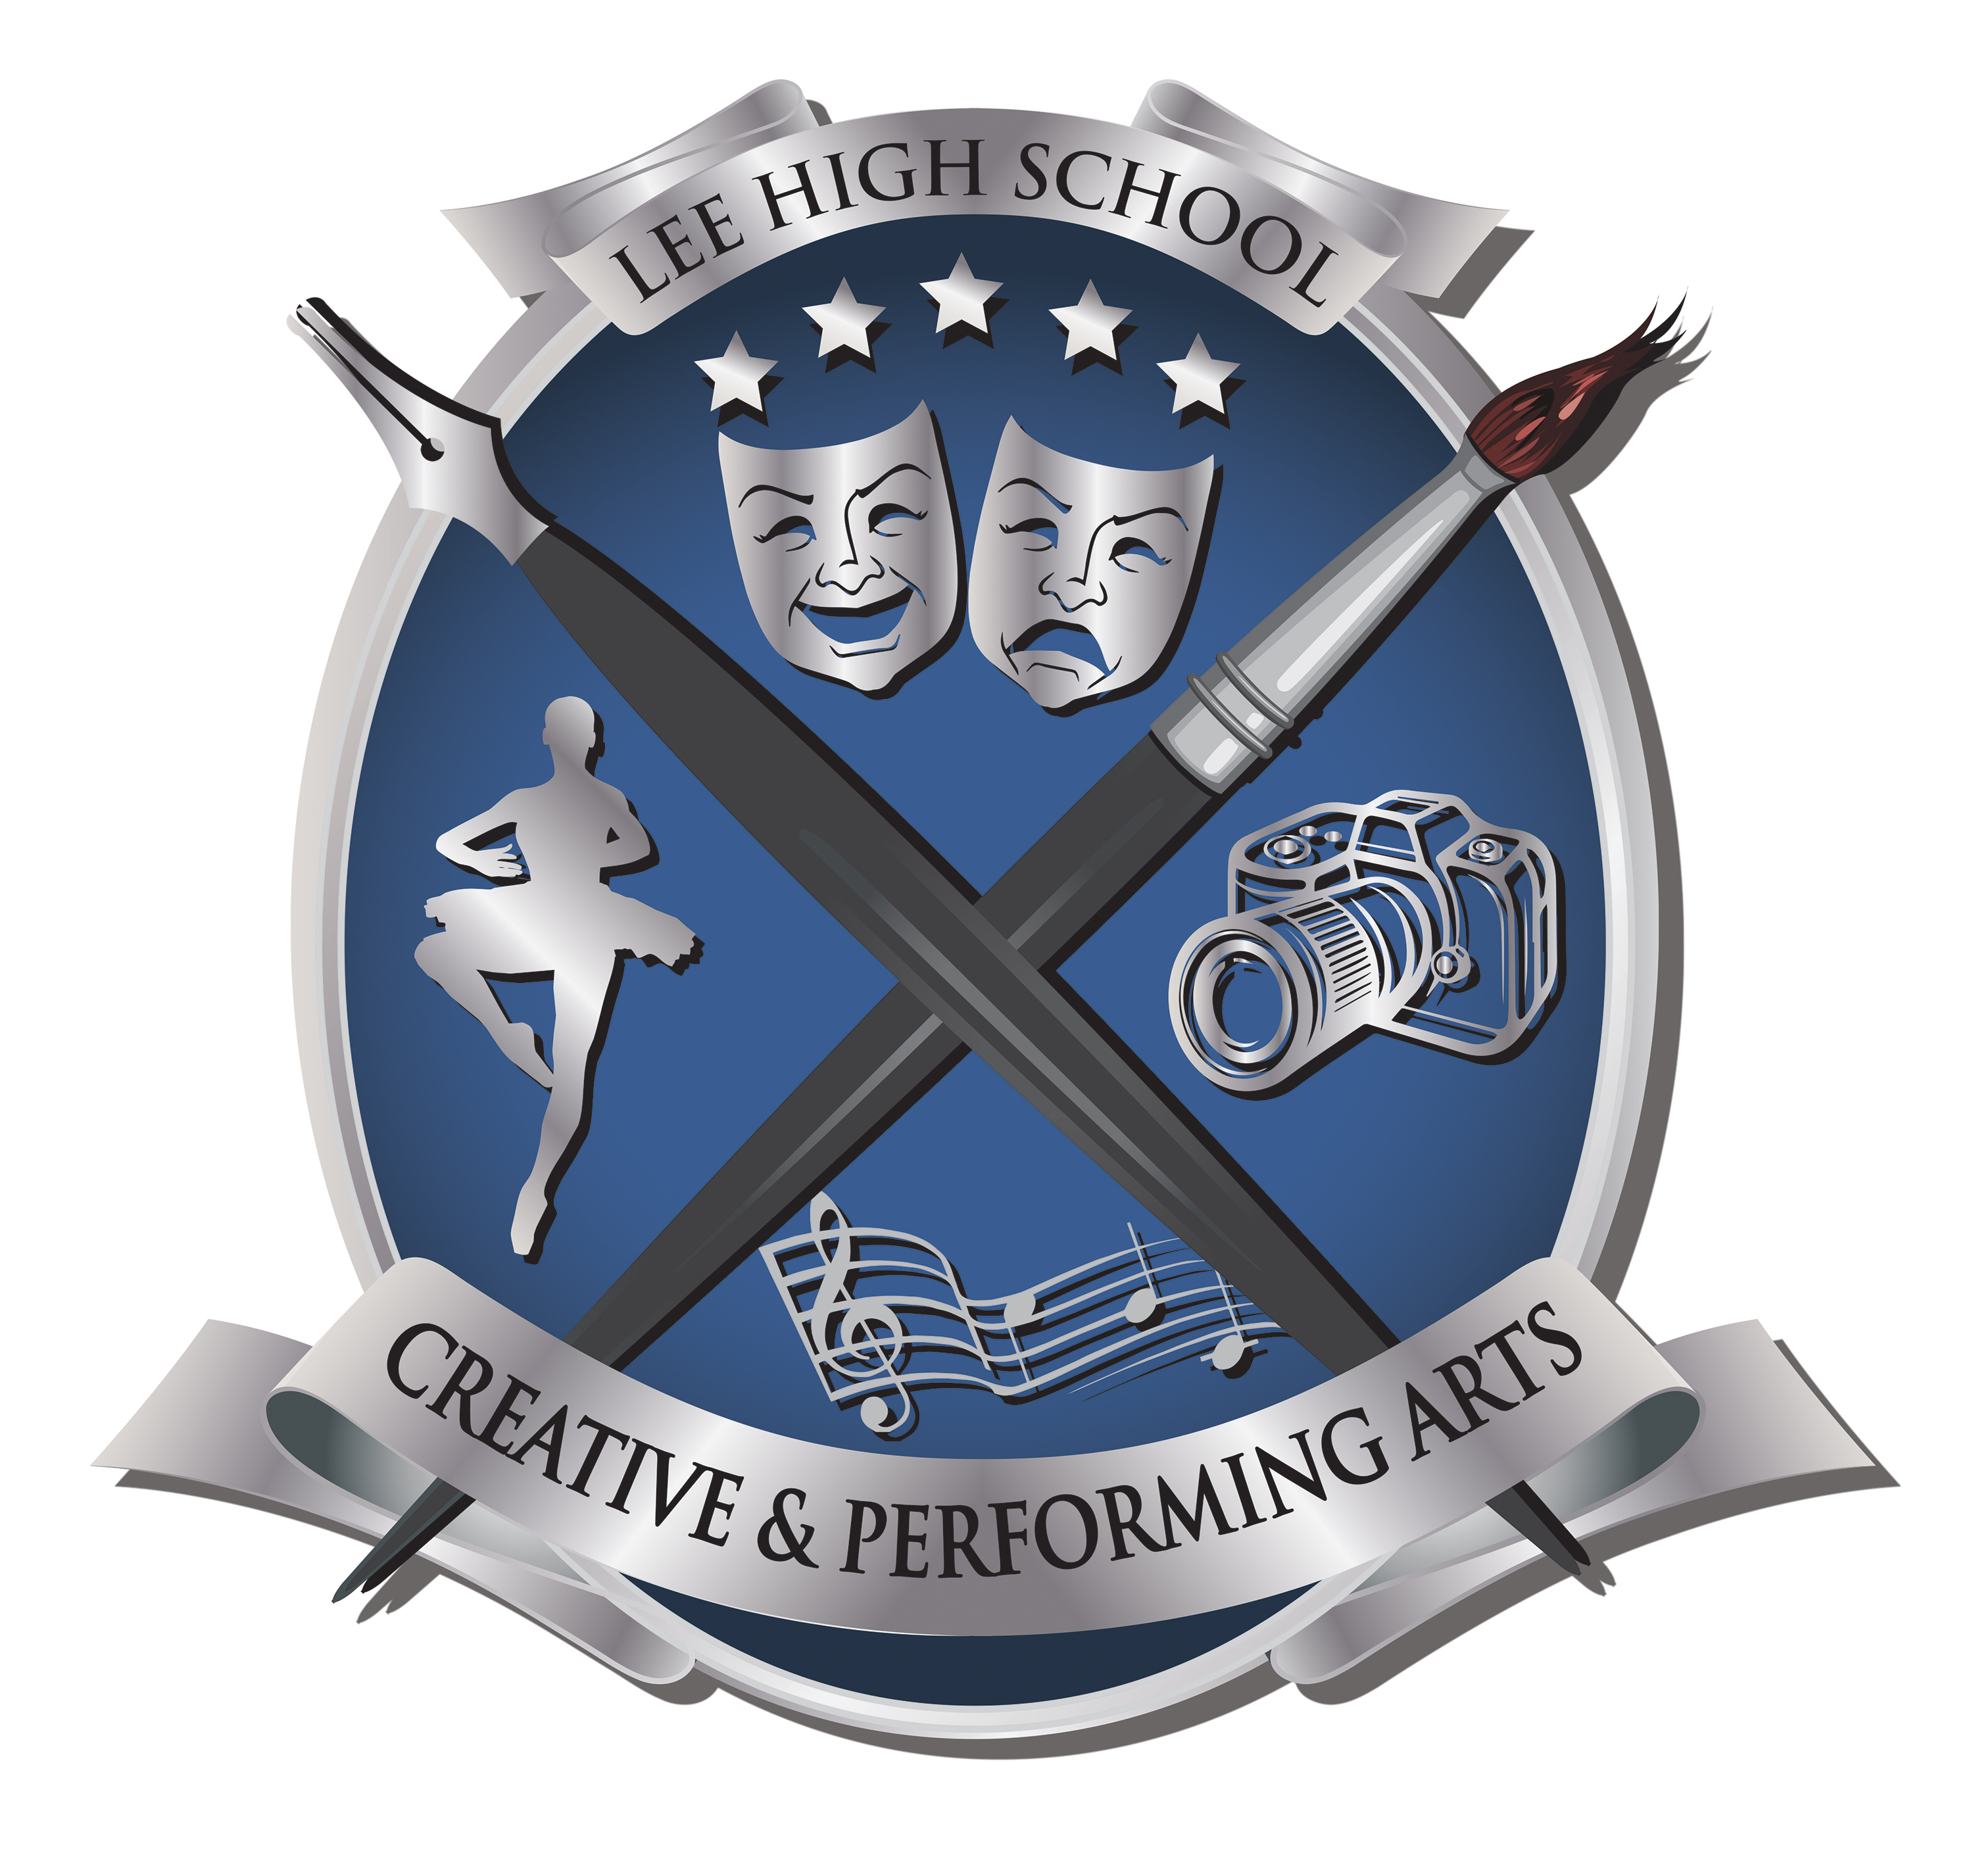 Lee High School Creative and Performing Arts